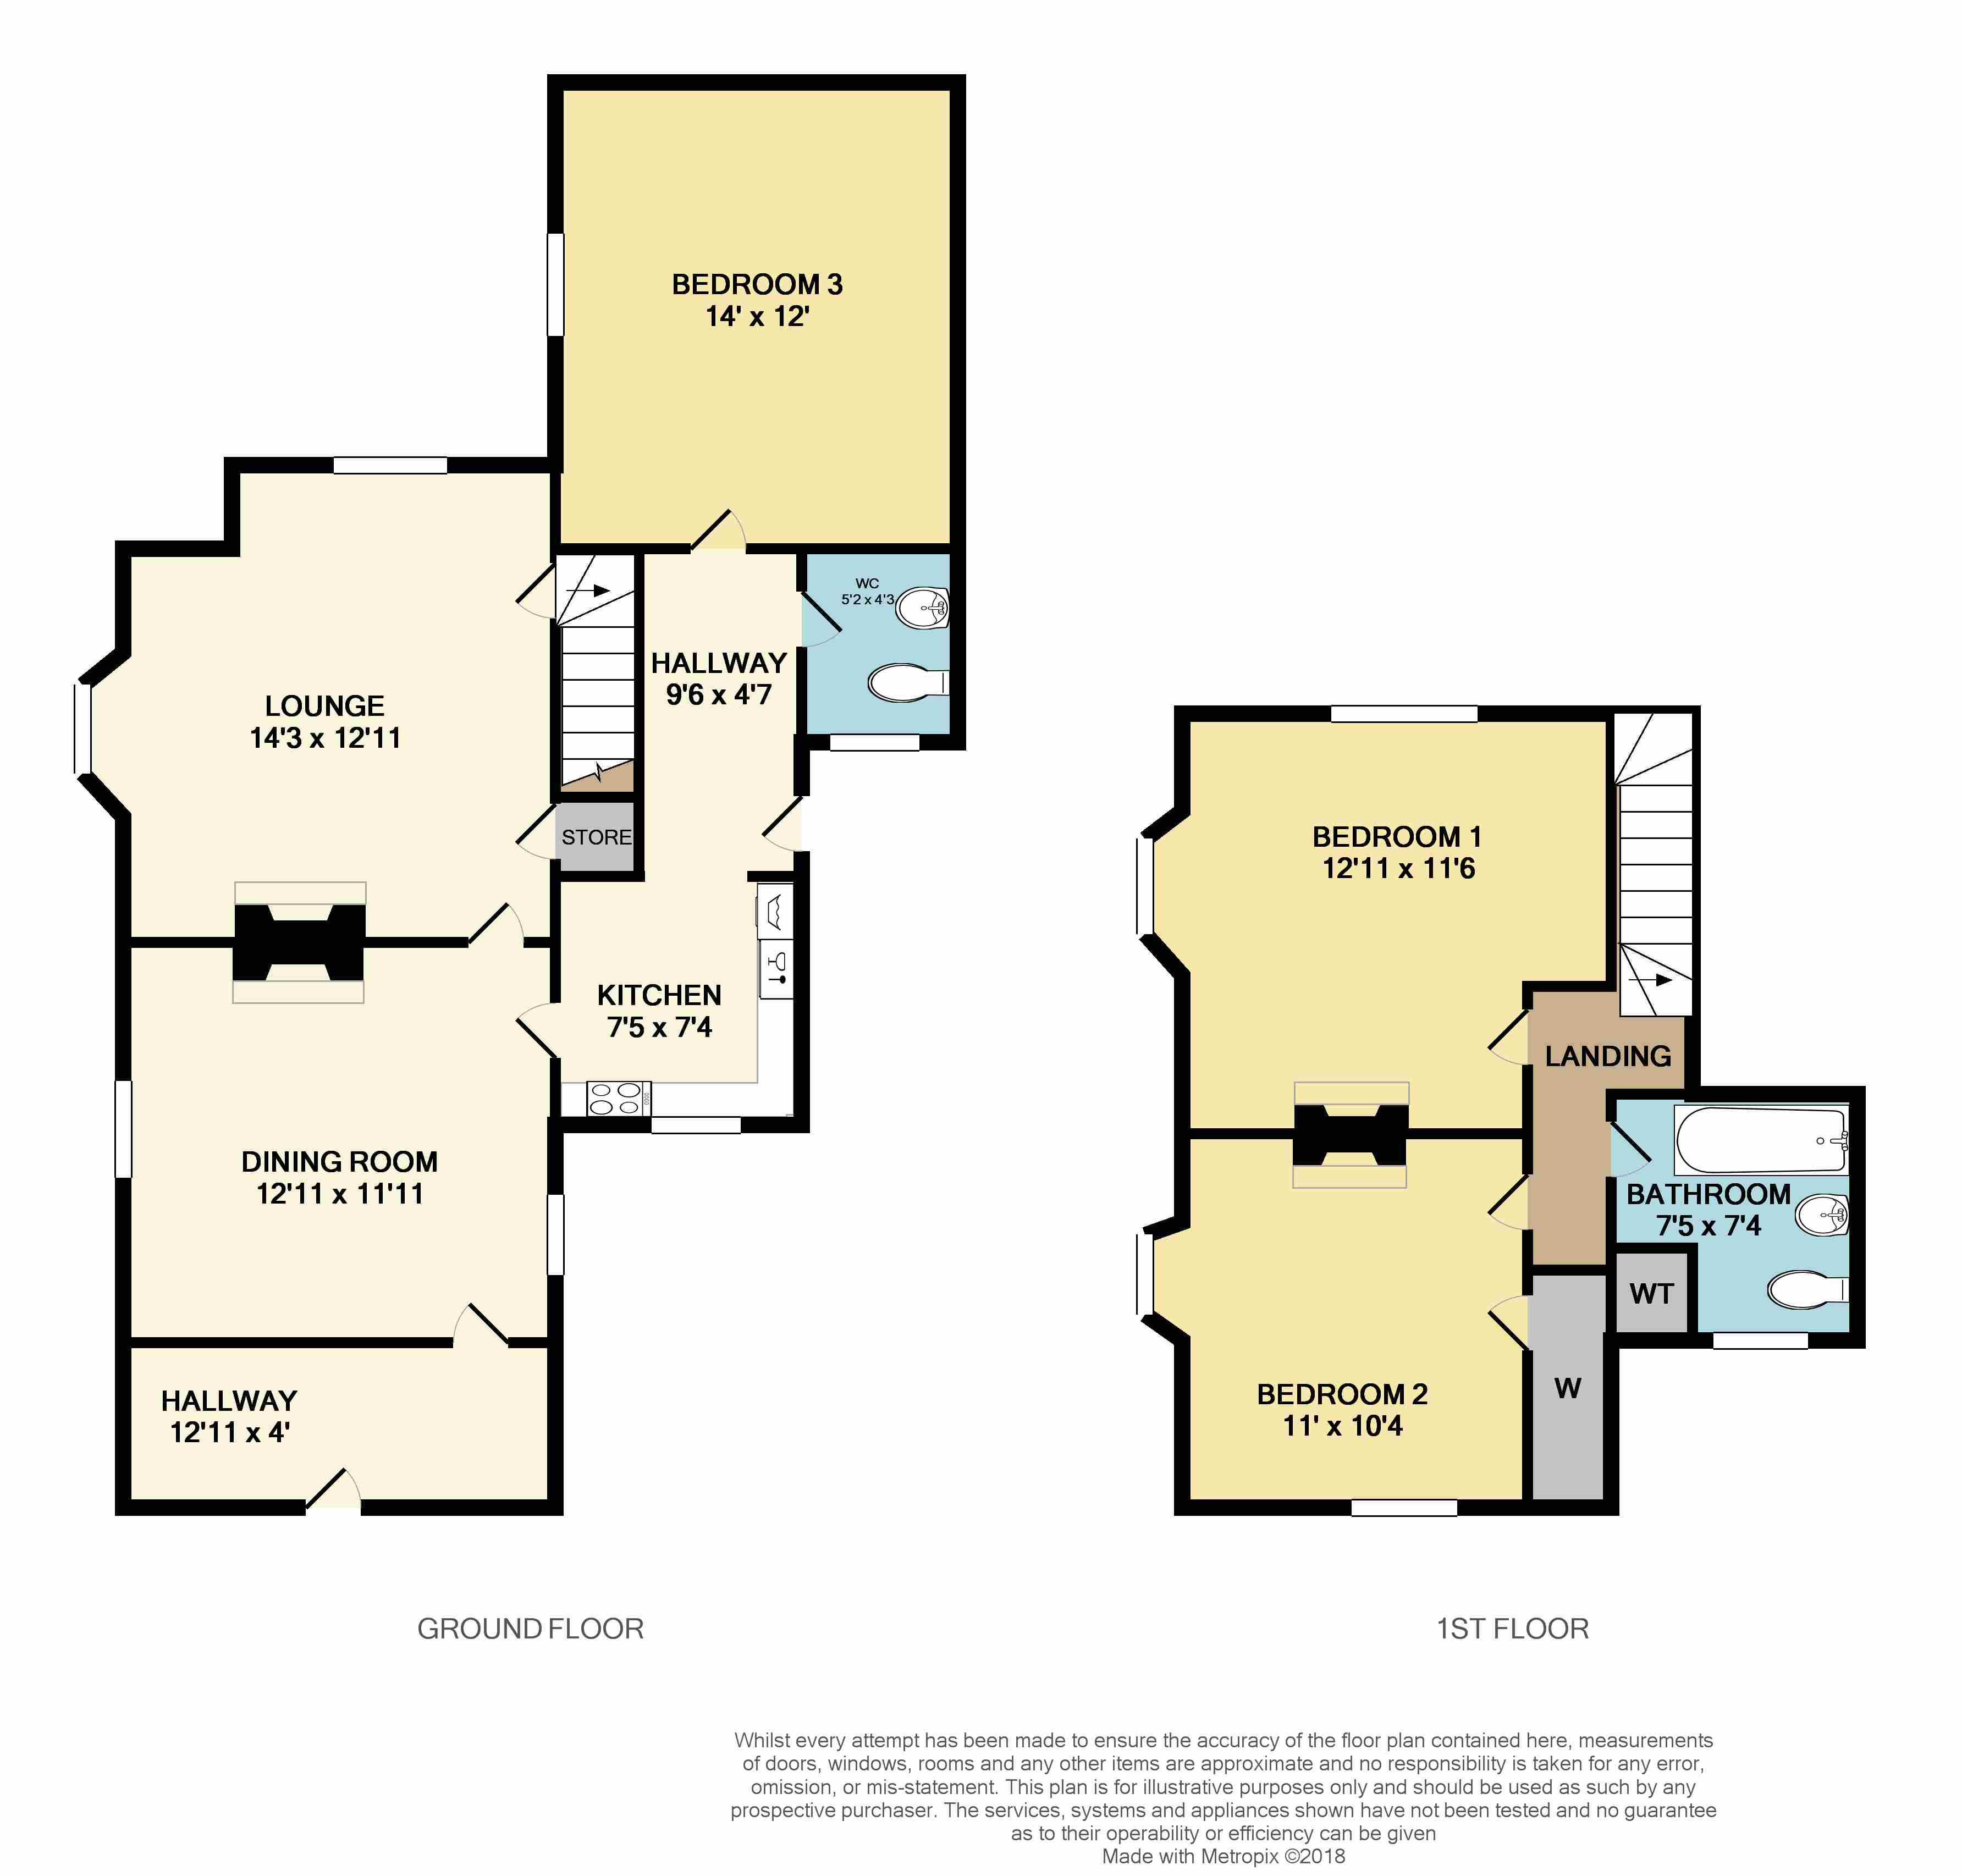 Floorplans For Flint Hill, Winwick, Northampton